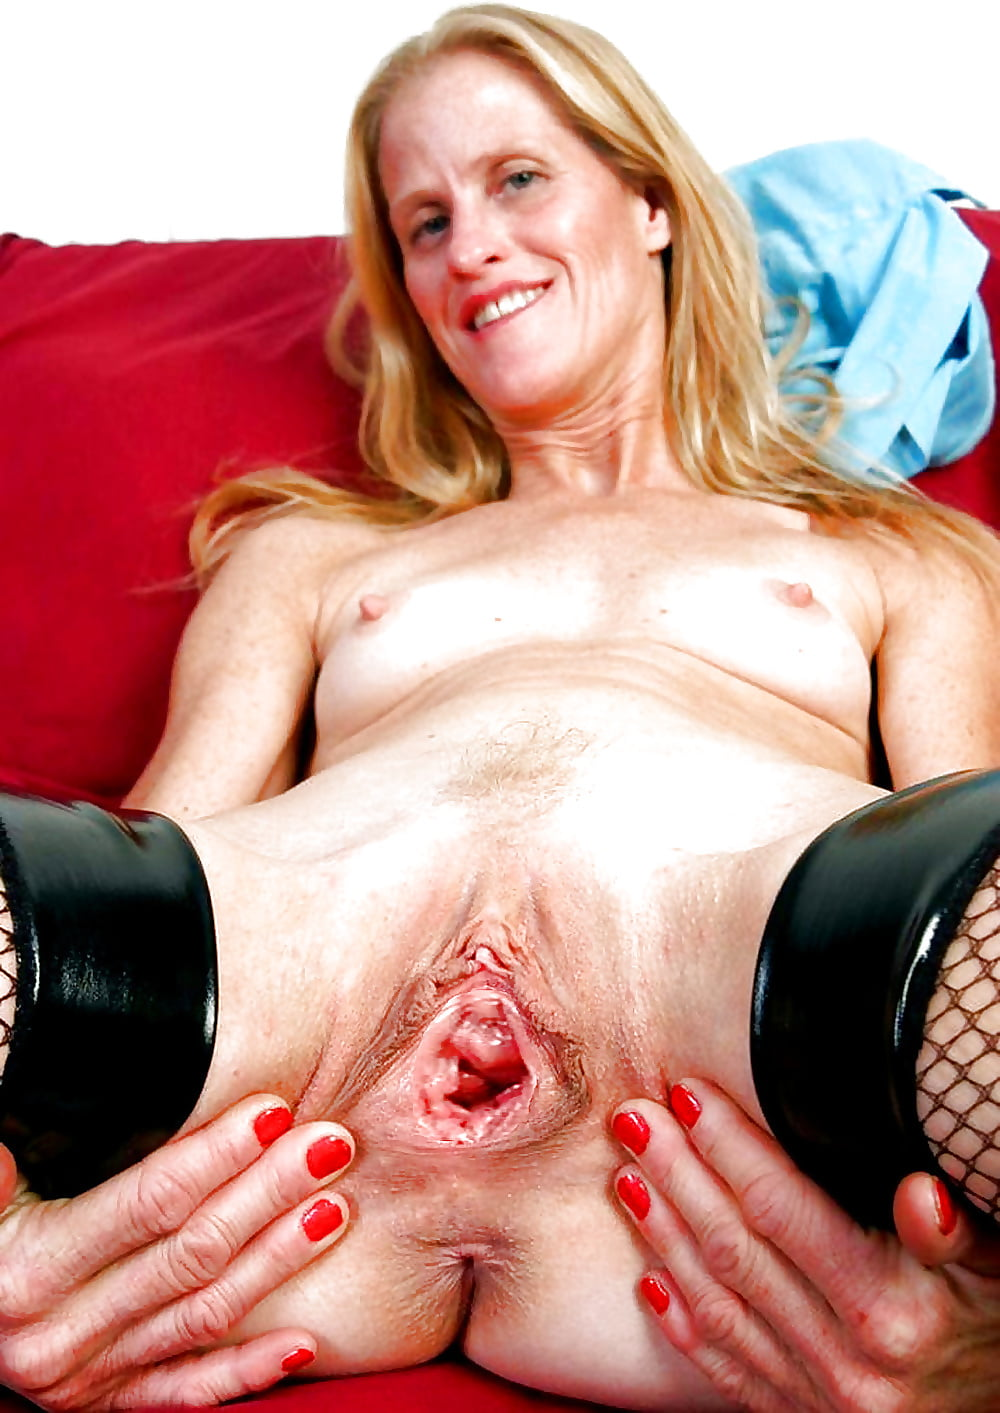 gaping-gilf-pussy-naomi-russell-with-cum-on-her-face